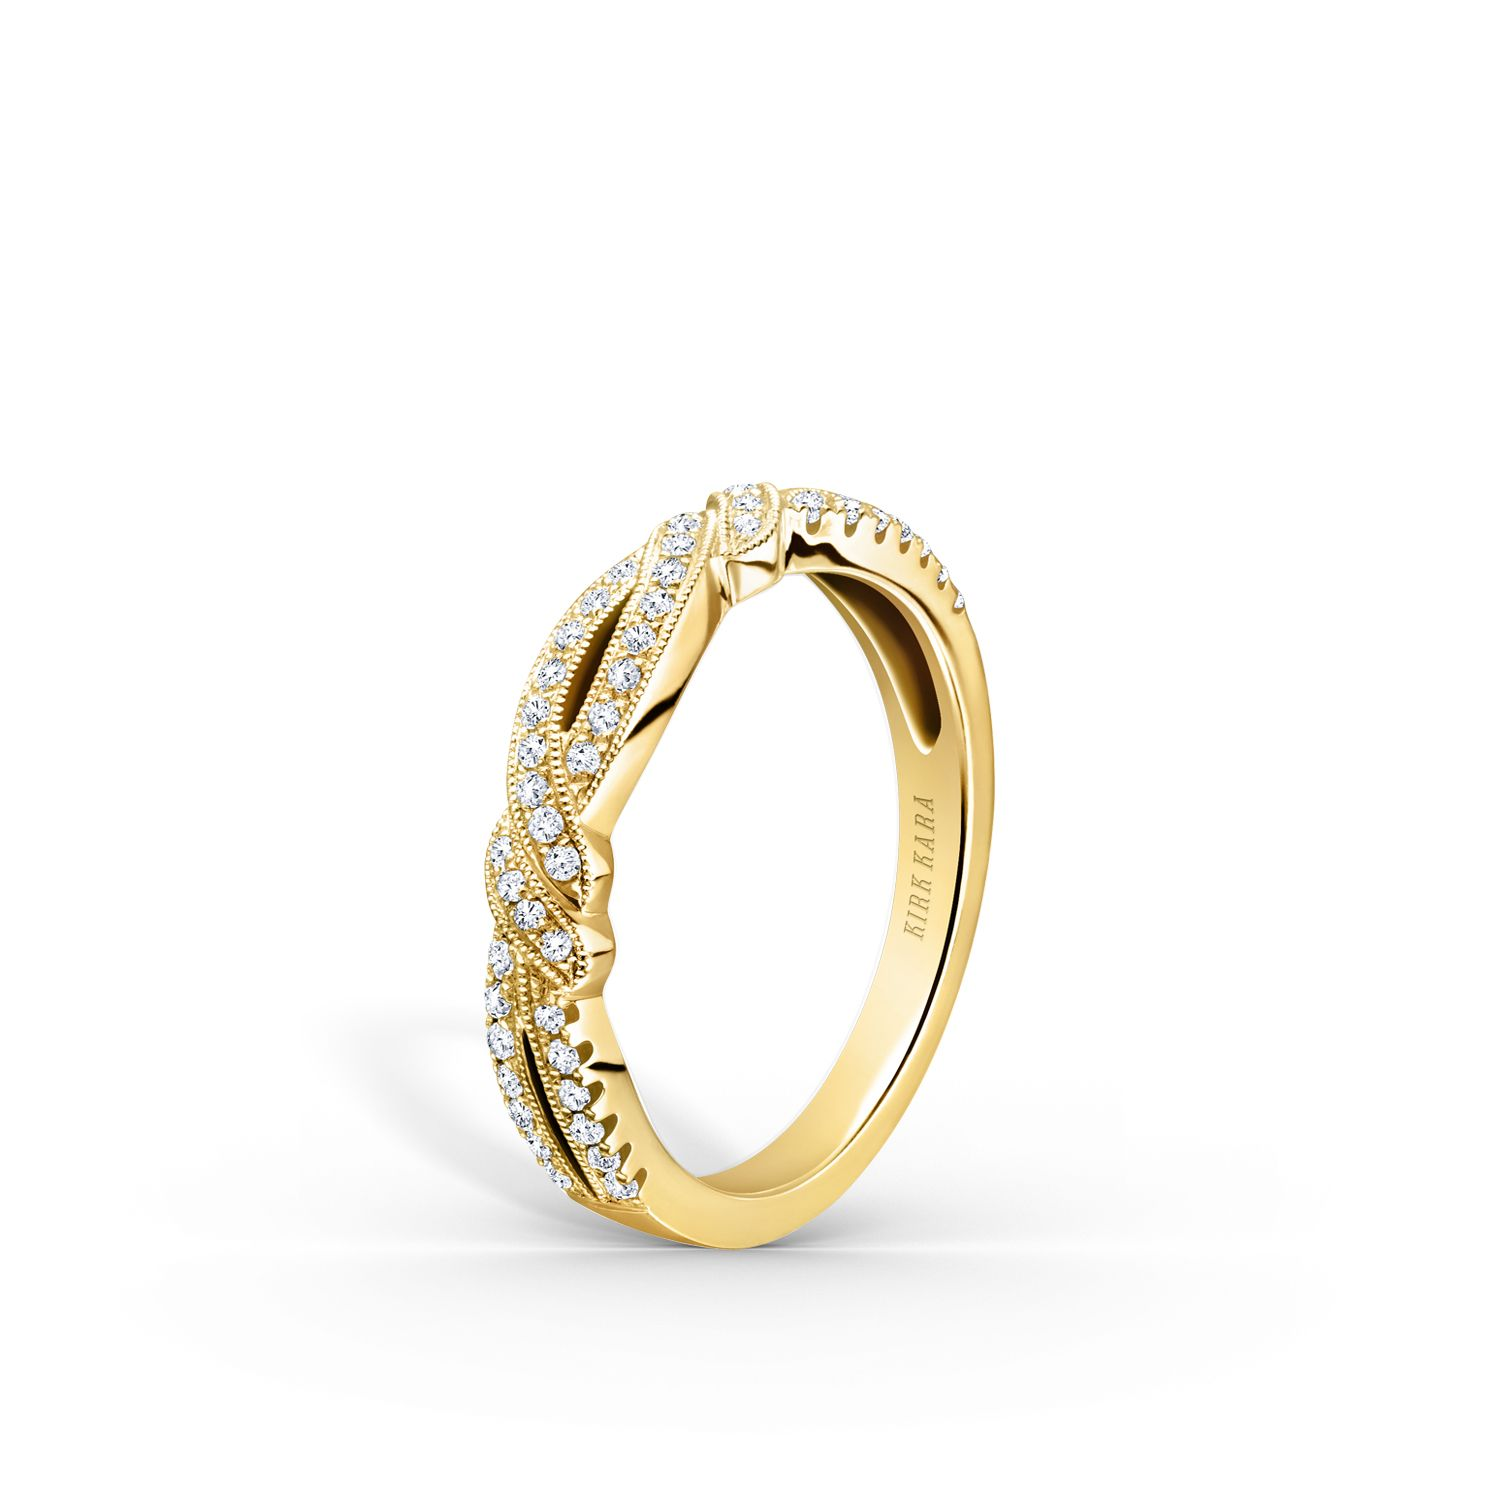 rings yellow product select gold mens gabrielle ring detailed wedding architectural very